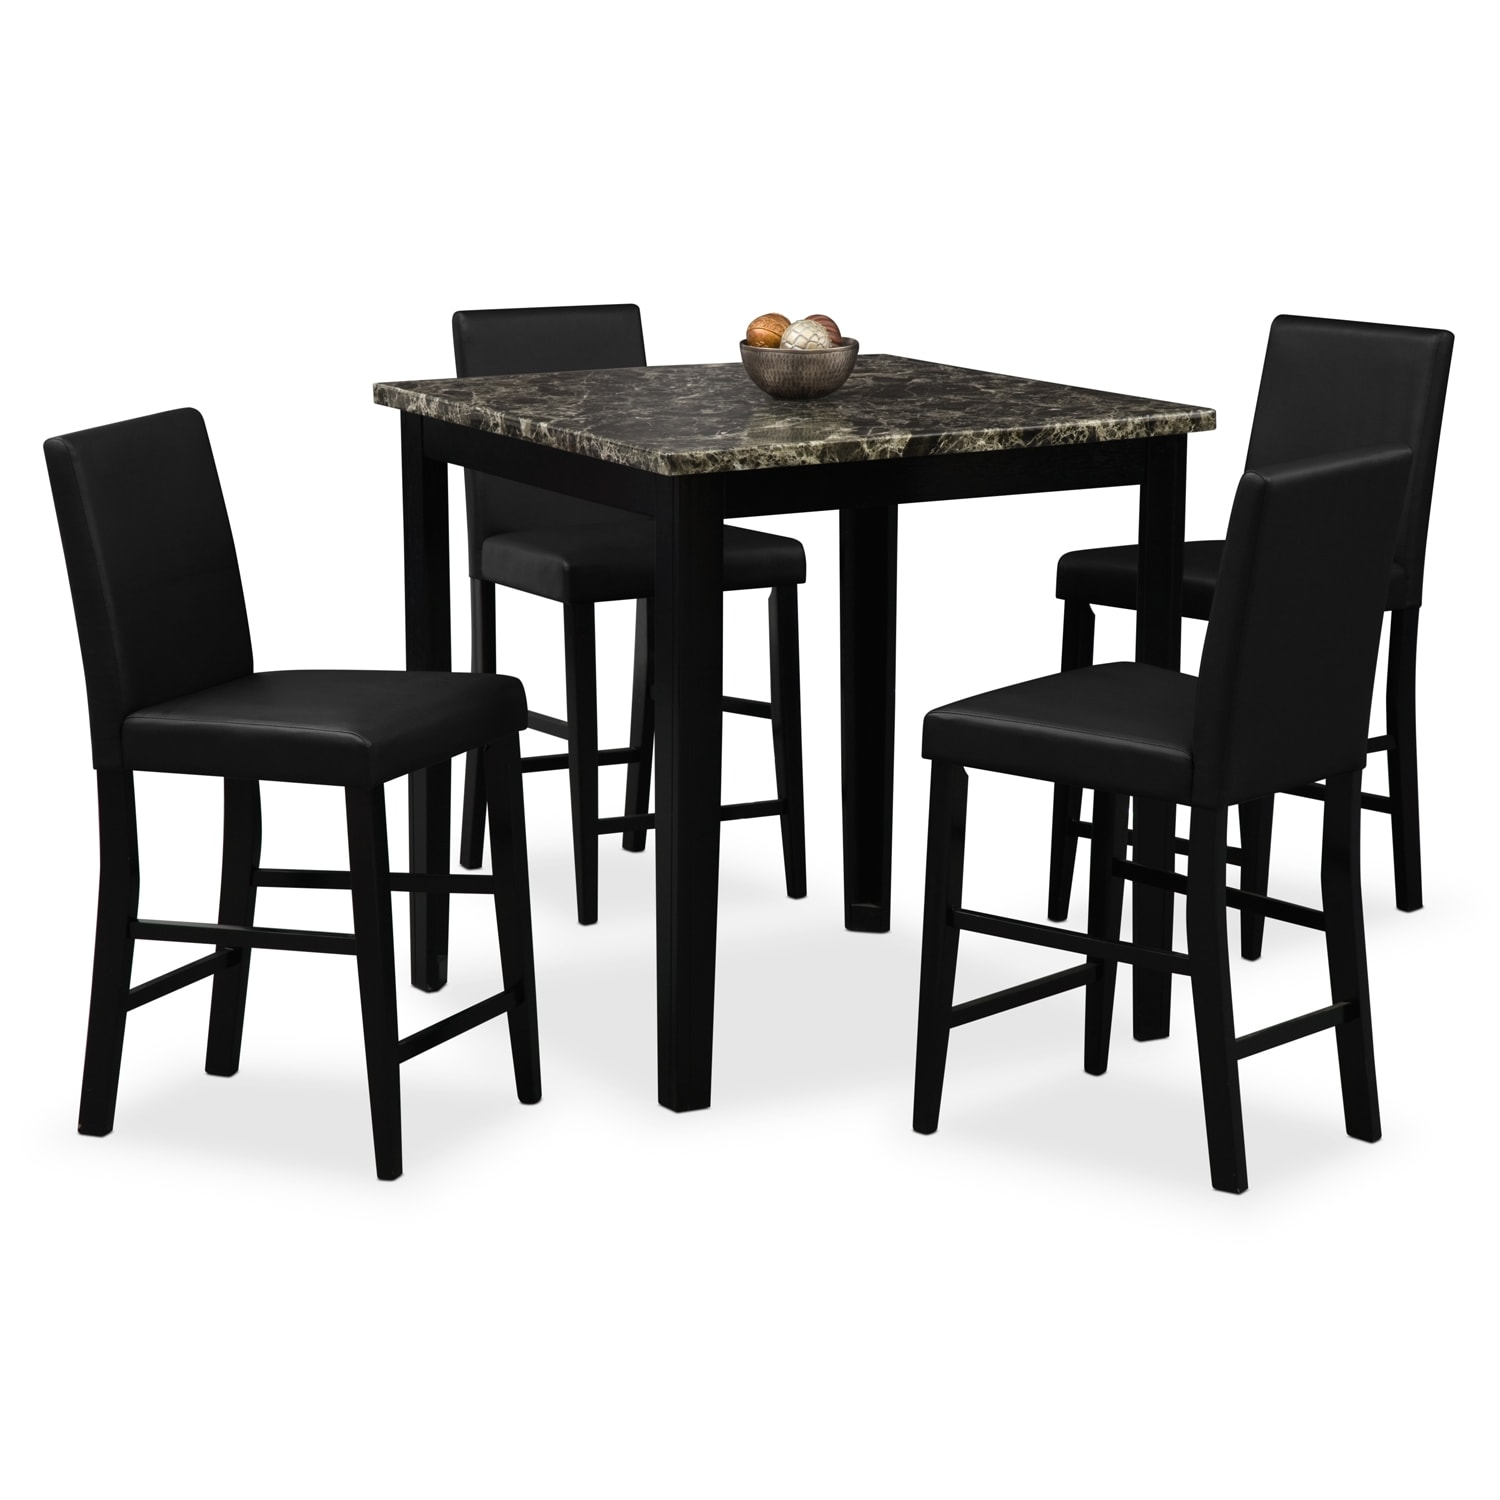 Black Dining Room Table And Chairs: Shadow Counter-Height Table And 4 Chairs - Black